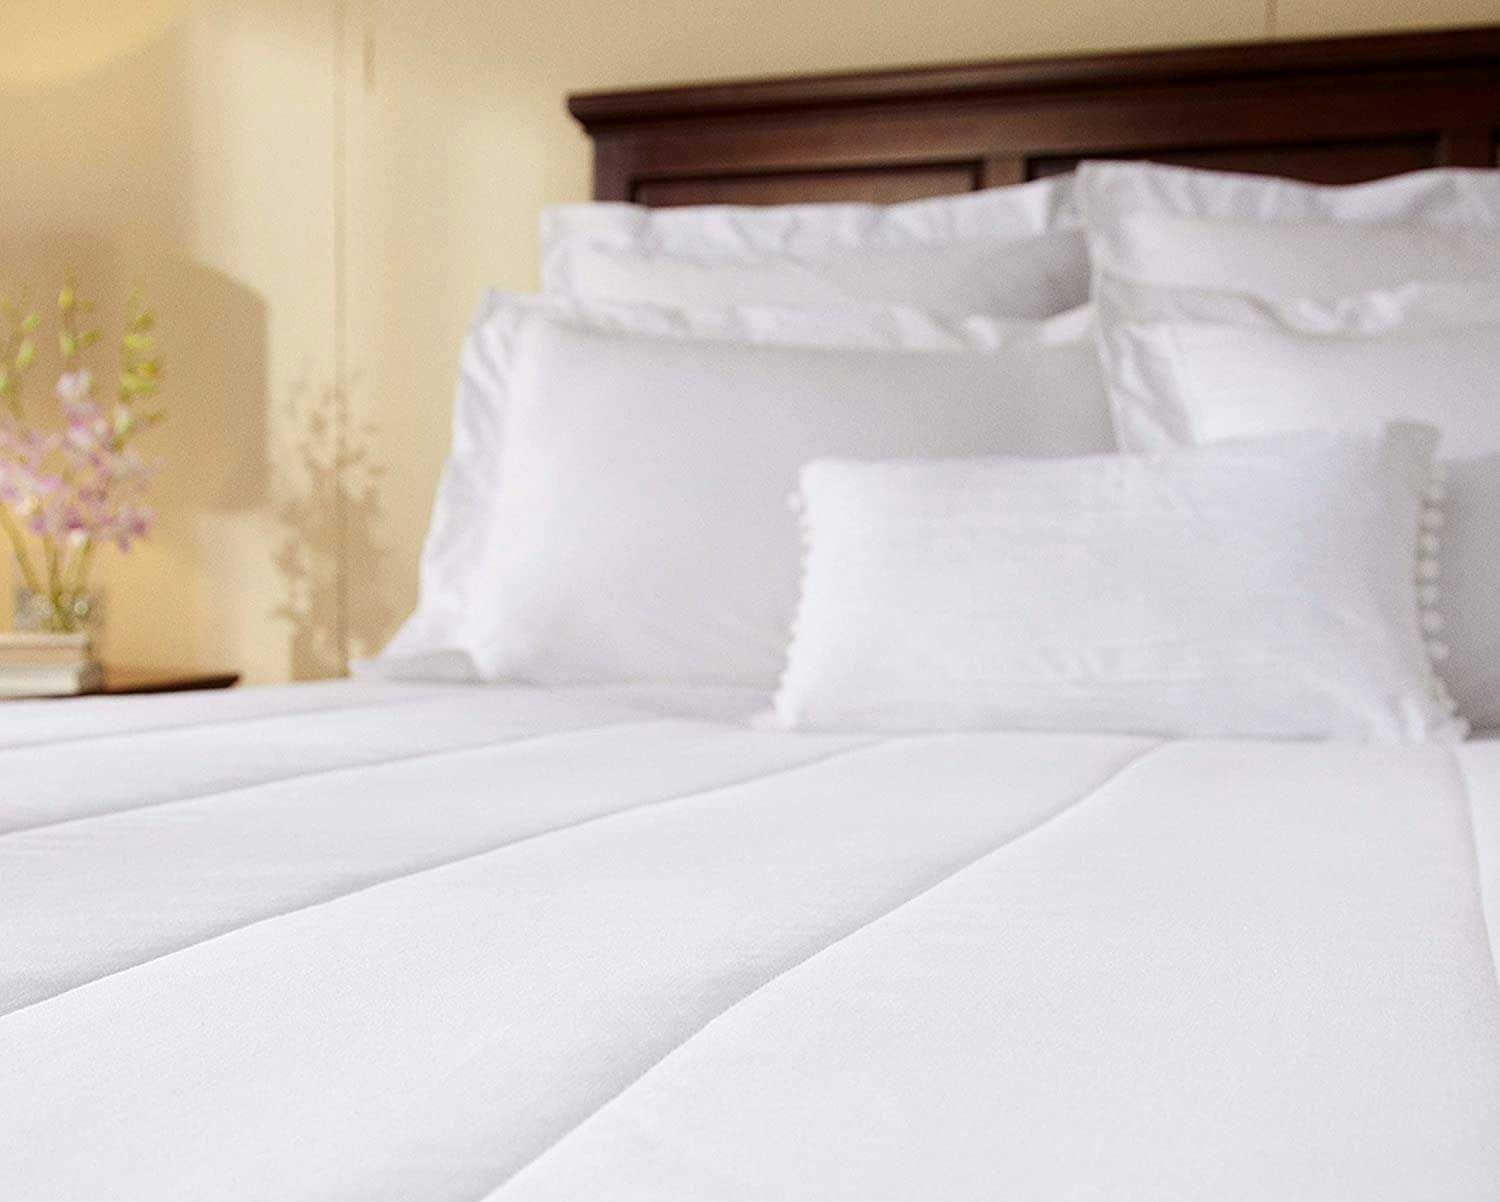 Sunbeam's best budget pick heated mattress pad, stretched over a queen size bed.